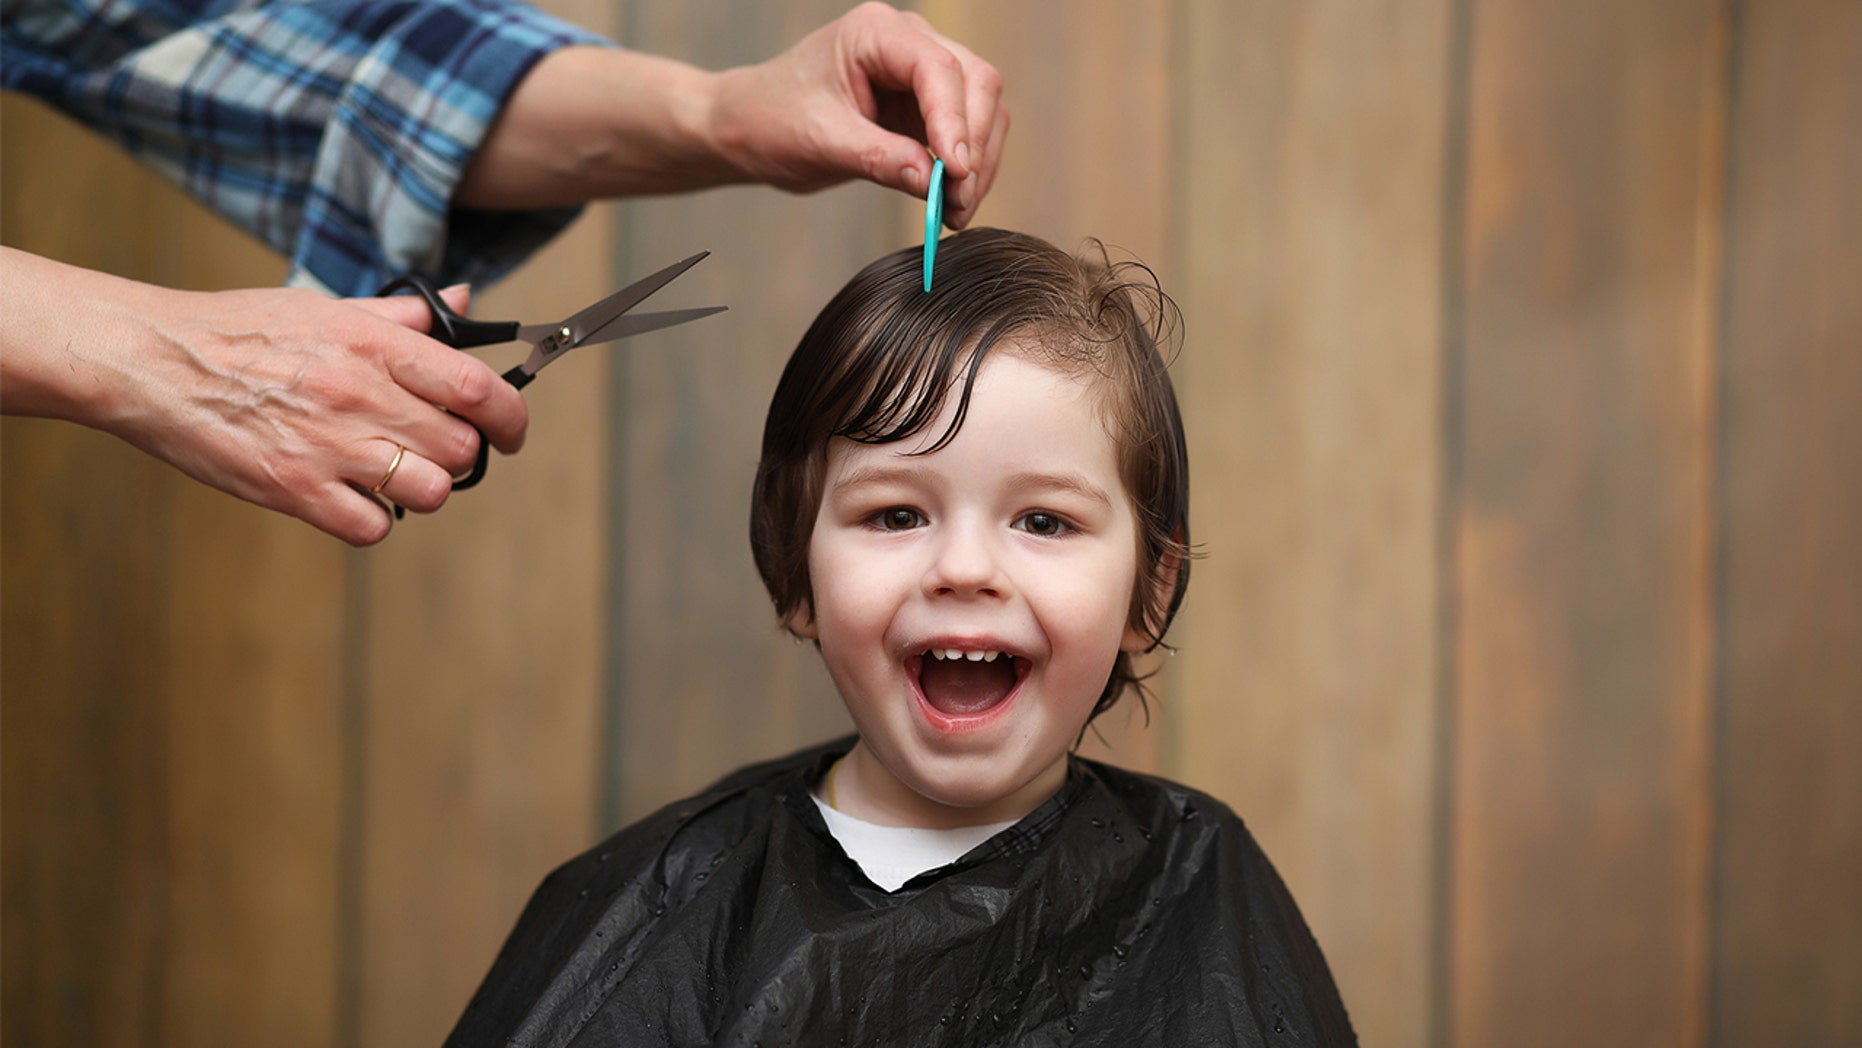 Haircuts are a whole less scary with great stylists around.